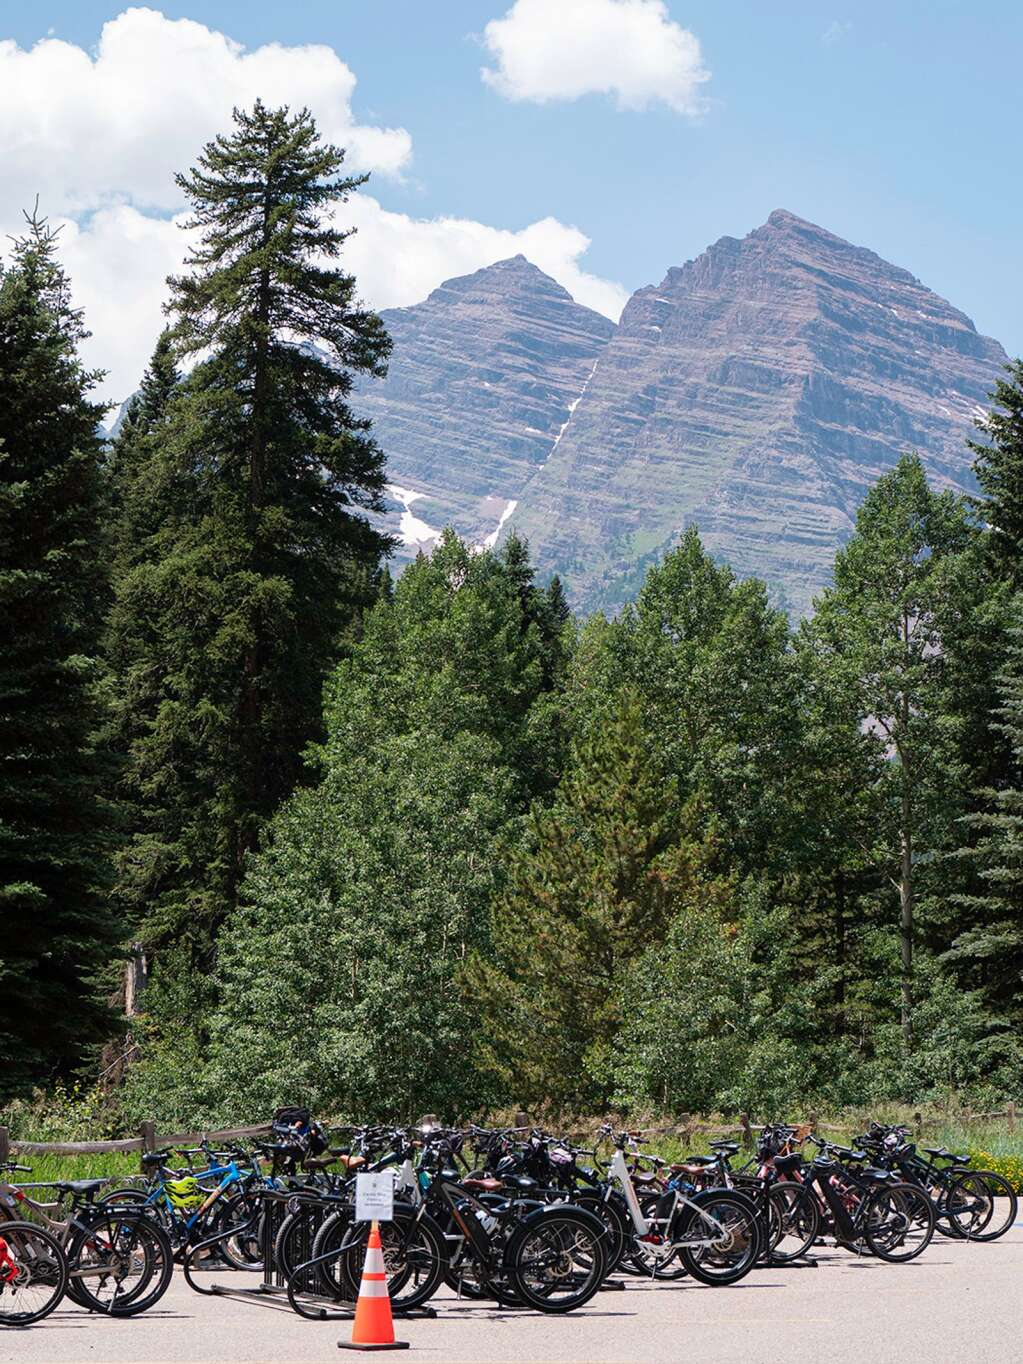 E-bikes fill multiple racks in the shadow of the Maroon Bells. An estimated 75% of the bike traffic on Maroon Creek Road is now e-bikes, according to the U.S. Forest Service. | Jim Paussa/Special to The Aspen Times